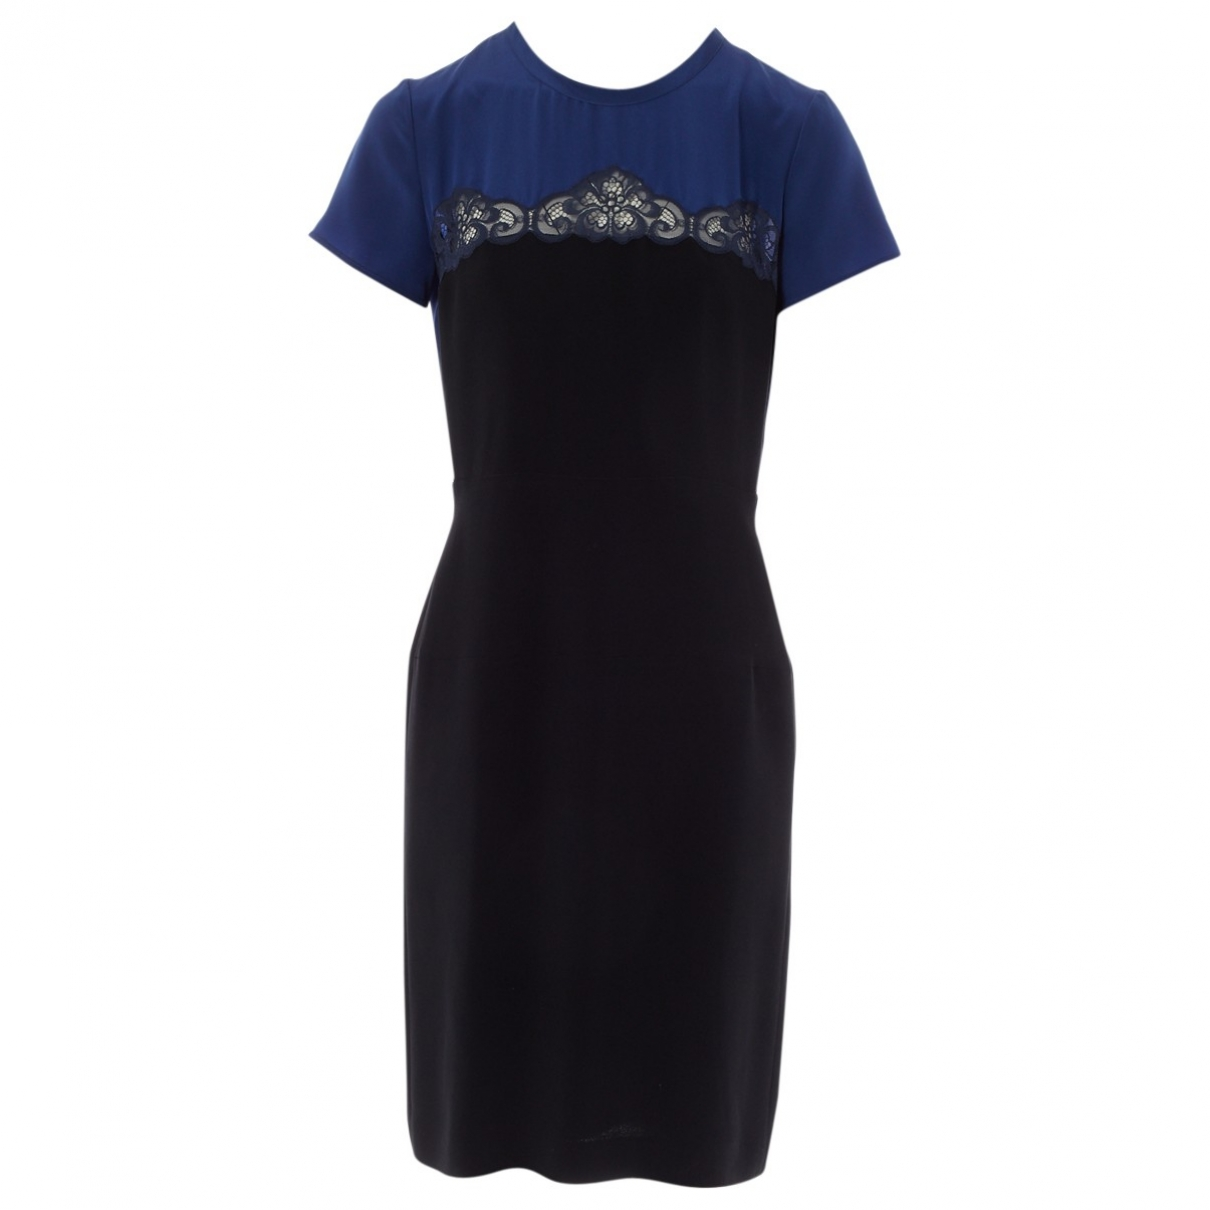 Stella Mccartney \N Black dress for Women 42 IT